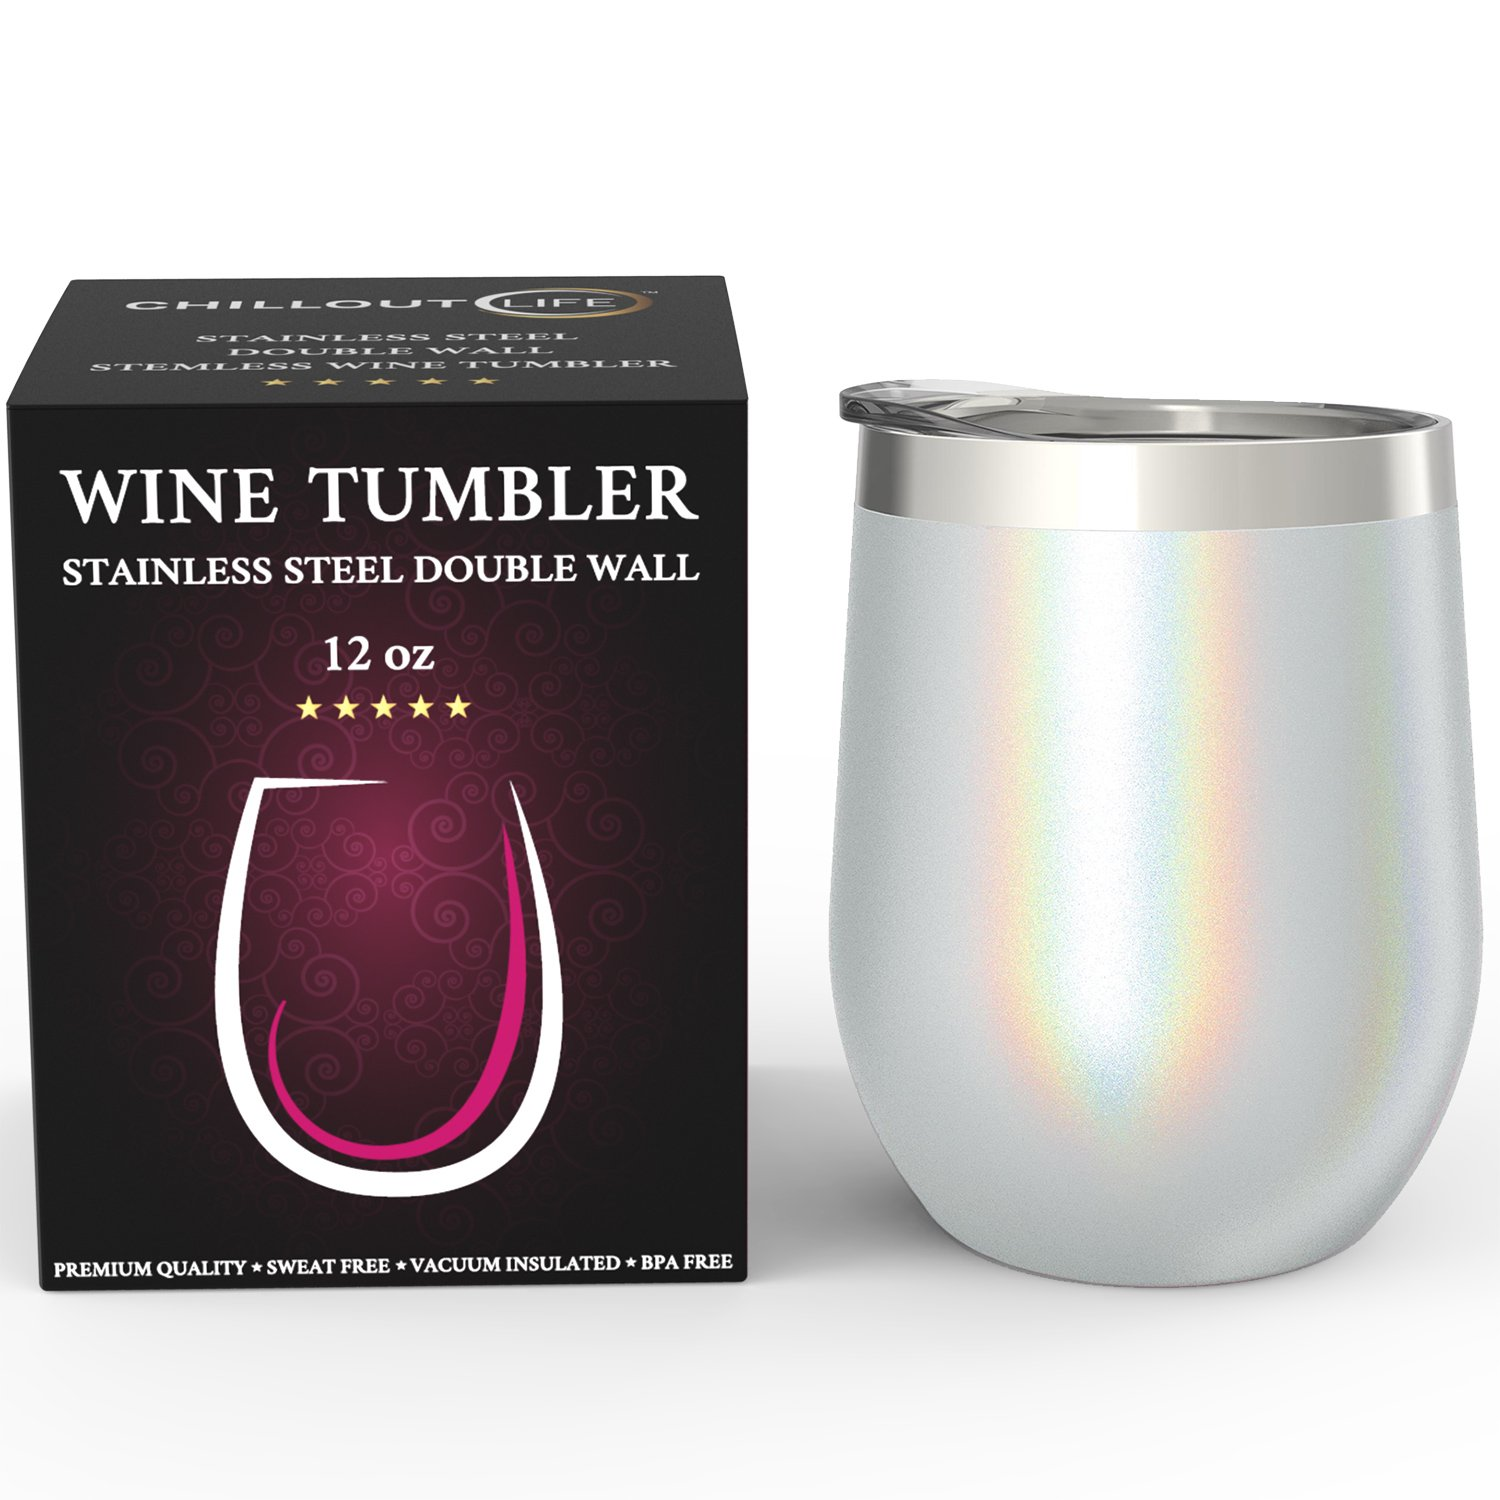 CHILLOUT LIFE Stainless Steel Stemless Wine Glass Tumbler with Lid, 12 oz | Double Wall Vacuum Insulated Travel Tumbler Cup for Coffee, Wine, Cocktails, Ice Cream - Sparkle Holographic Wine Tumbler by CHILLOUT LIFE (Image #7)